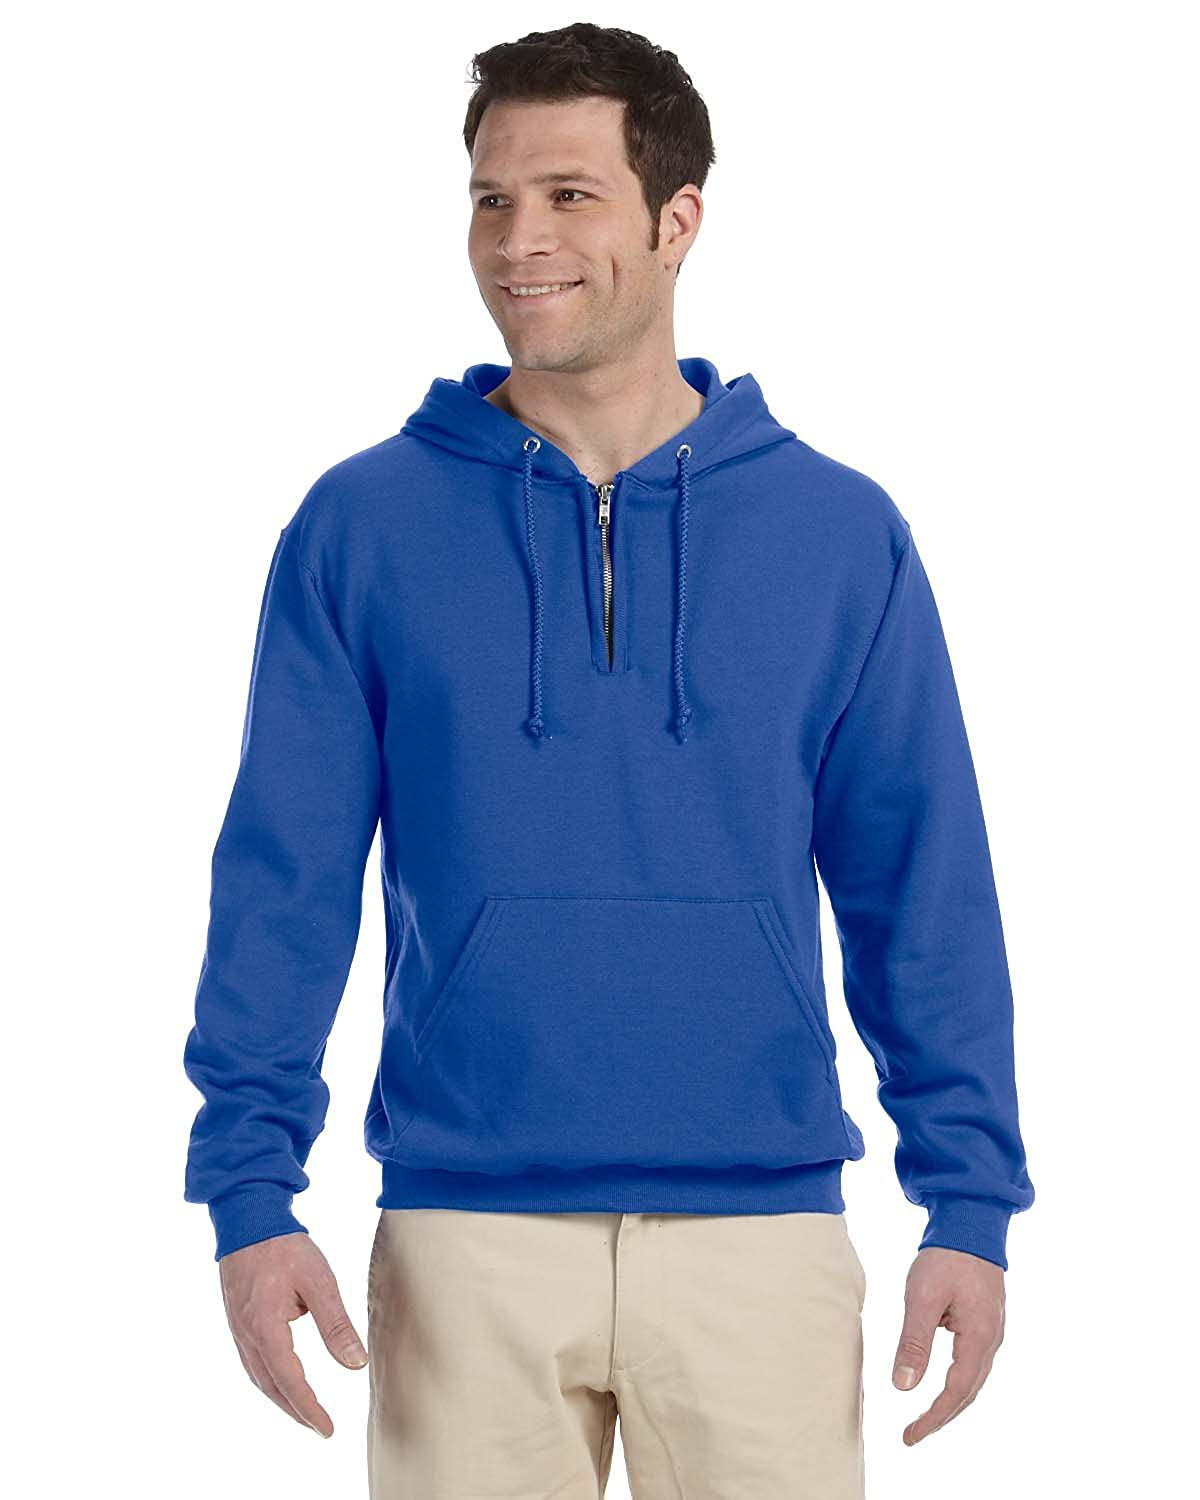 Jerzees 8 oz., 50/50 NuBlend Fleece Quarter-Zip Pullover Hooded Sweatshirt 994MR